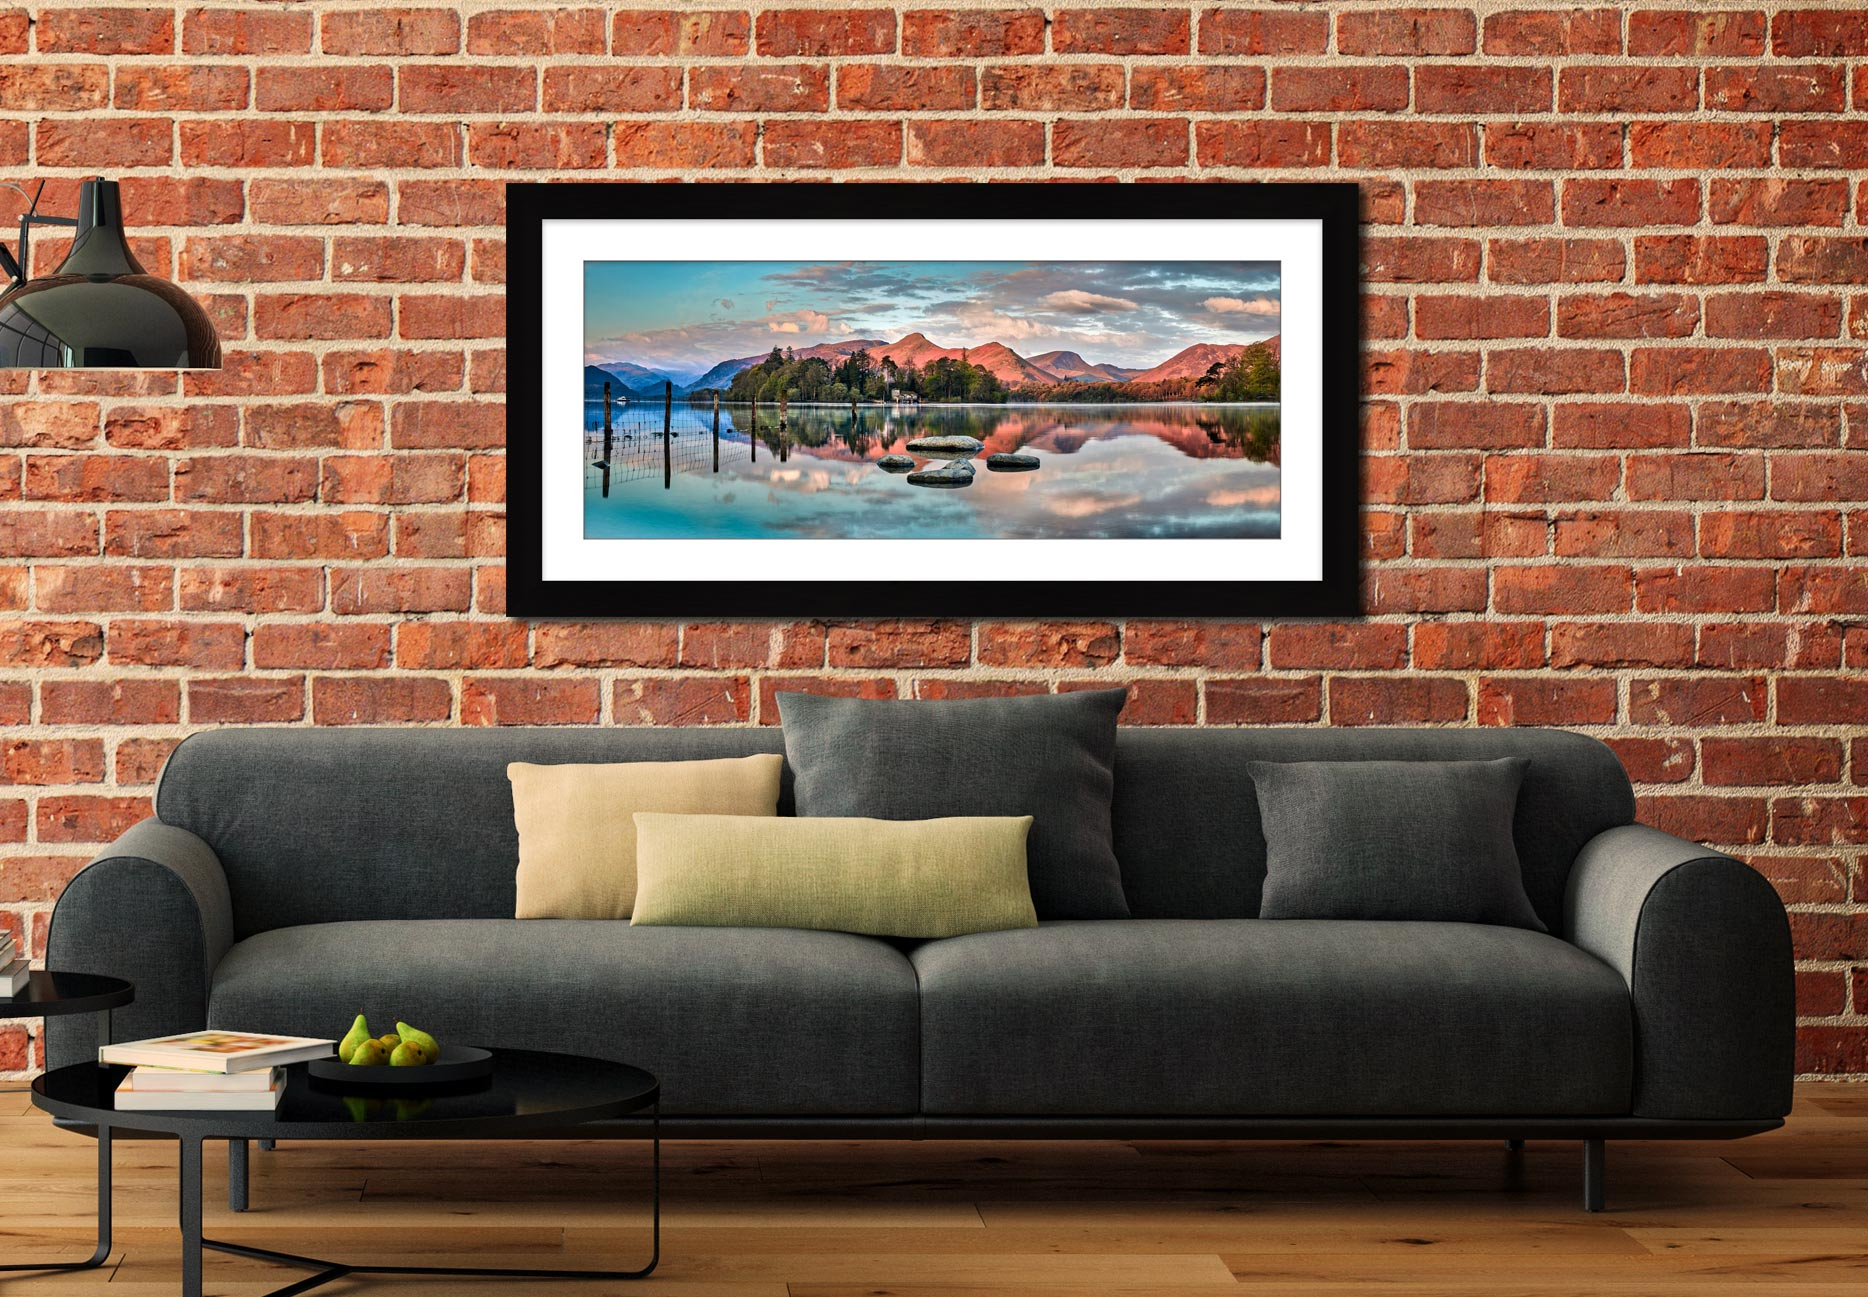 Derwent Isle Calm Dawn - Framed Print with Mount on Wall